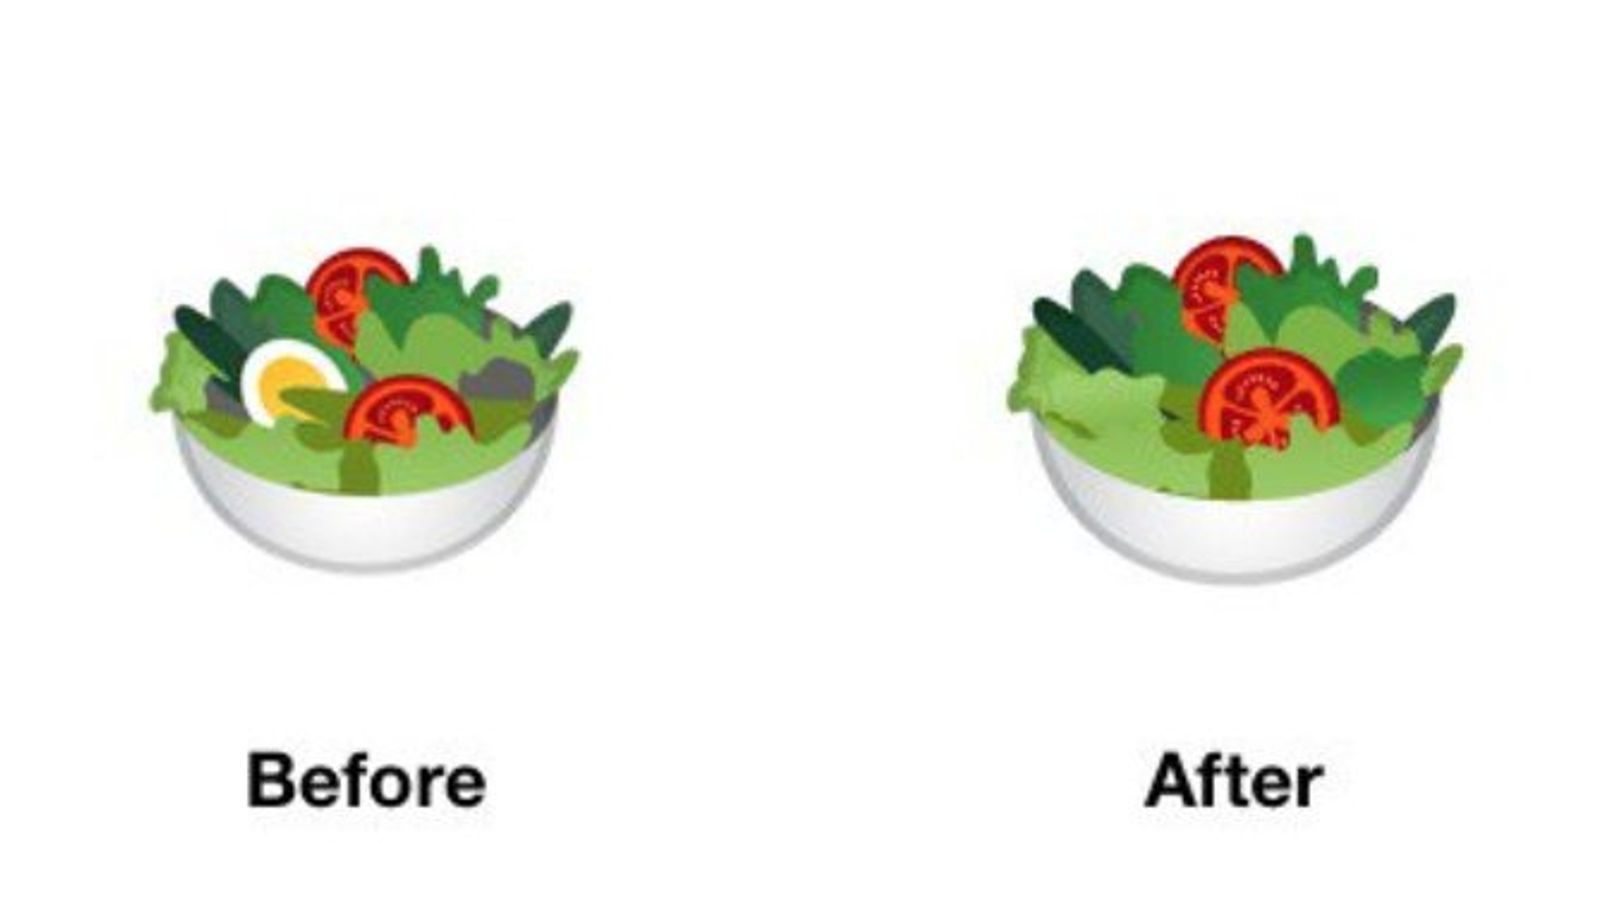 Google makes salad emoji suitable for vegans